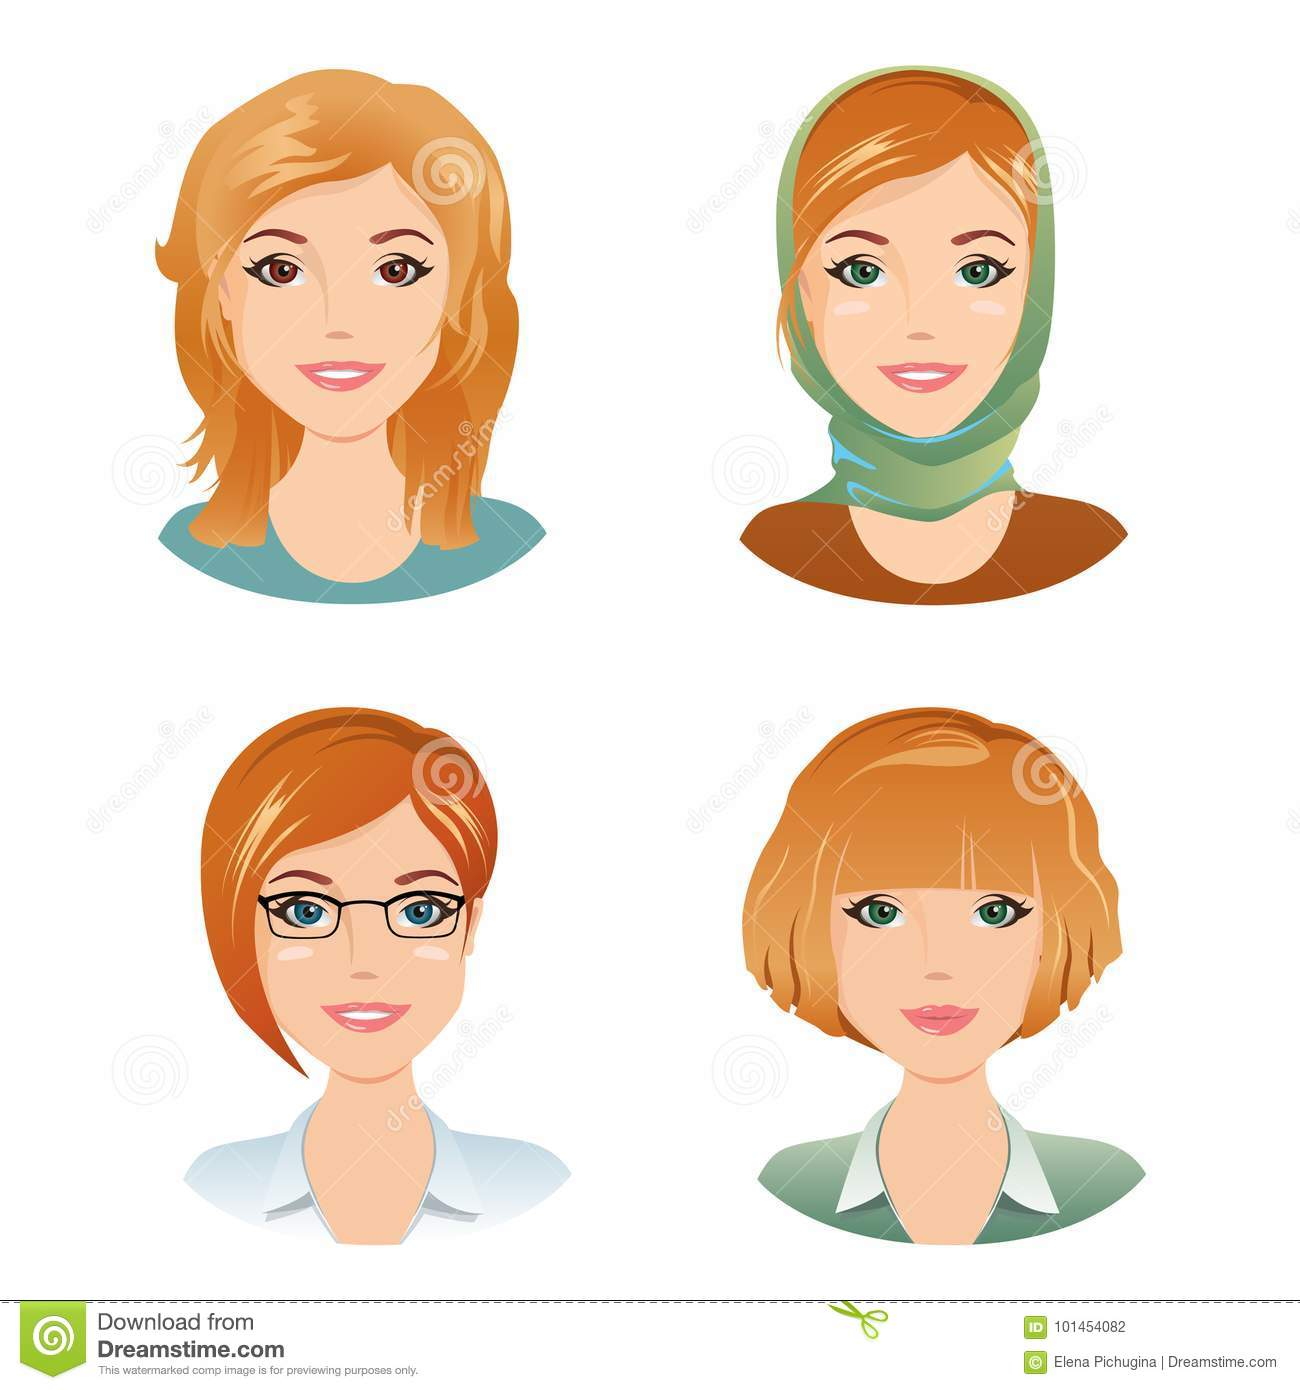 hairstyles Young adult women